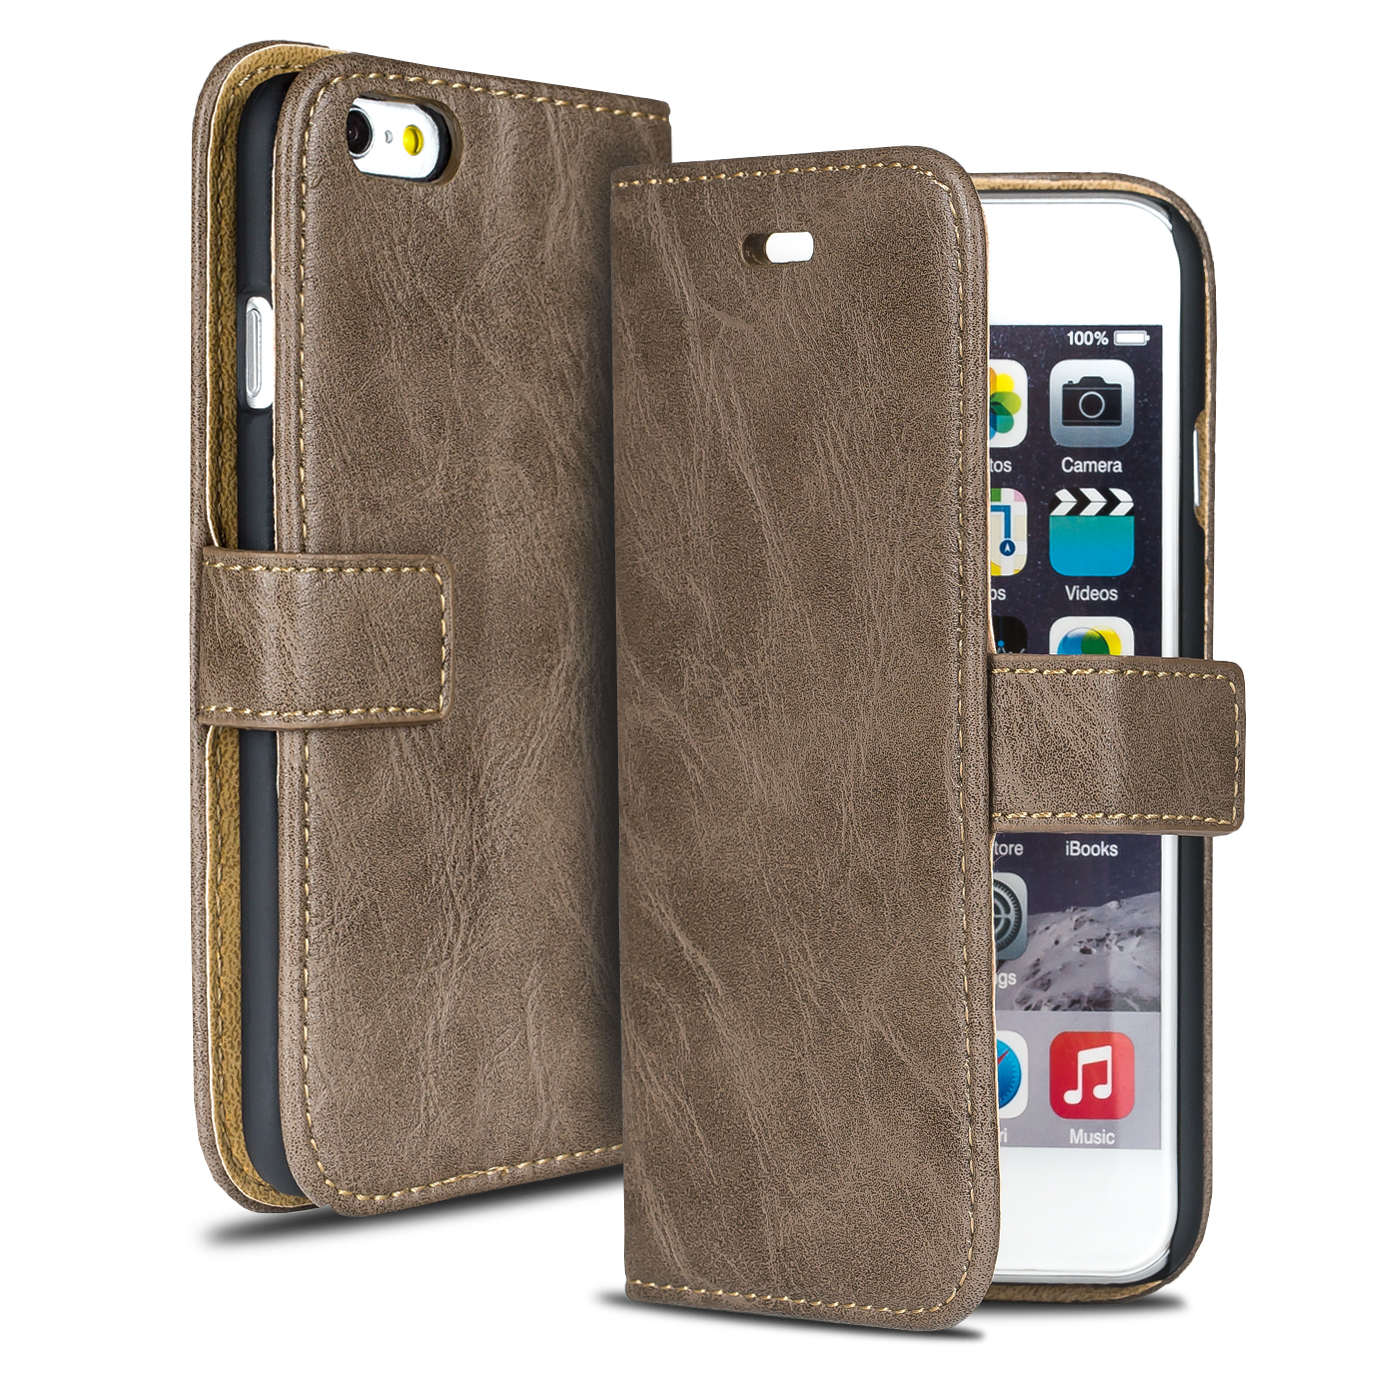 luxus handy tasche f r apple iphone flip cover case schutz h lle wallet etui ebay. Black Bedroom Furniture Sets. Home Design Ideas